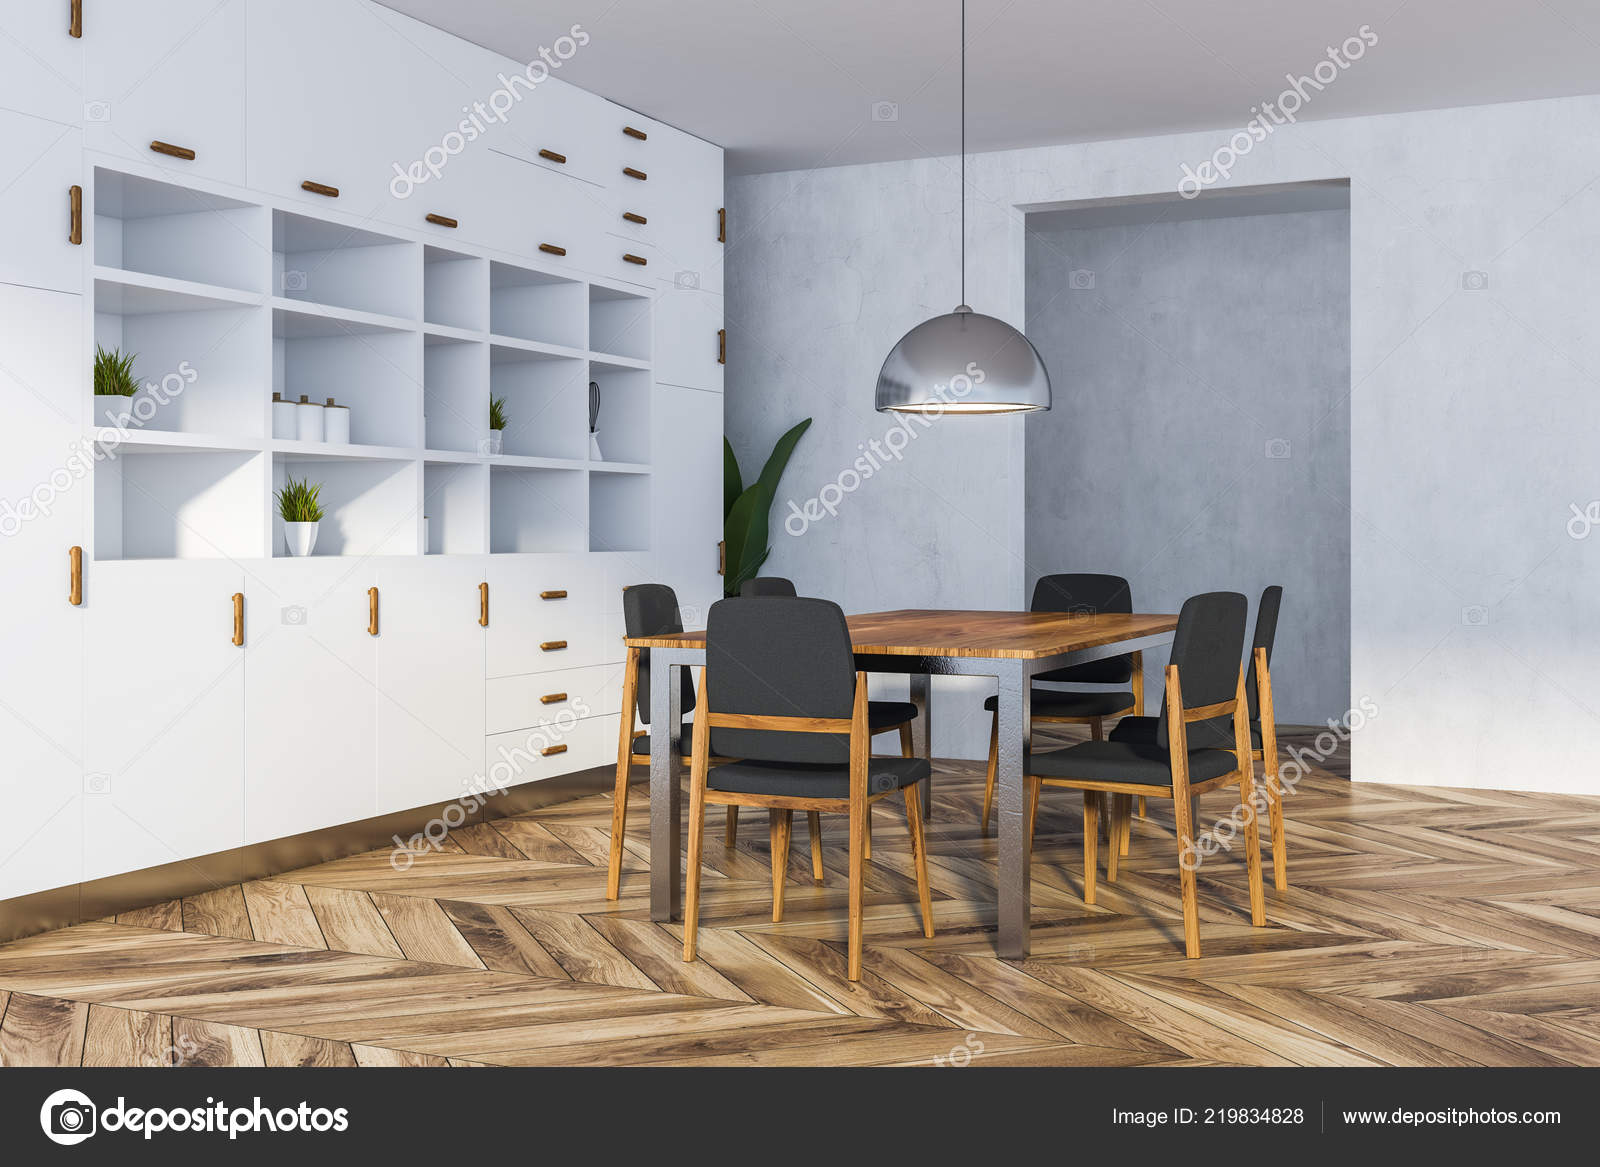 Picture of: Corner Dining Room White Walls Wooden Floor Long Table Chairs Stock Photo C Denisismagilov 219834828